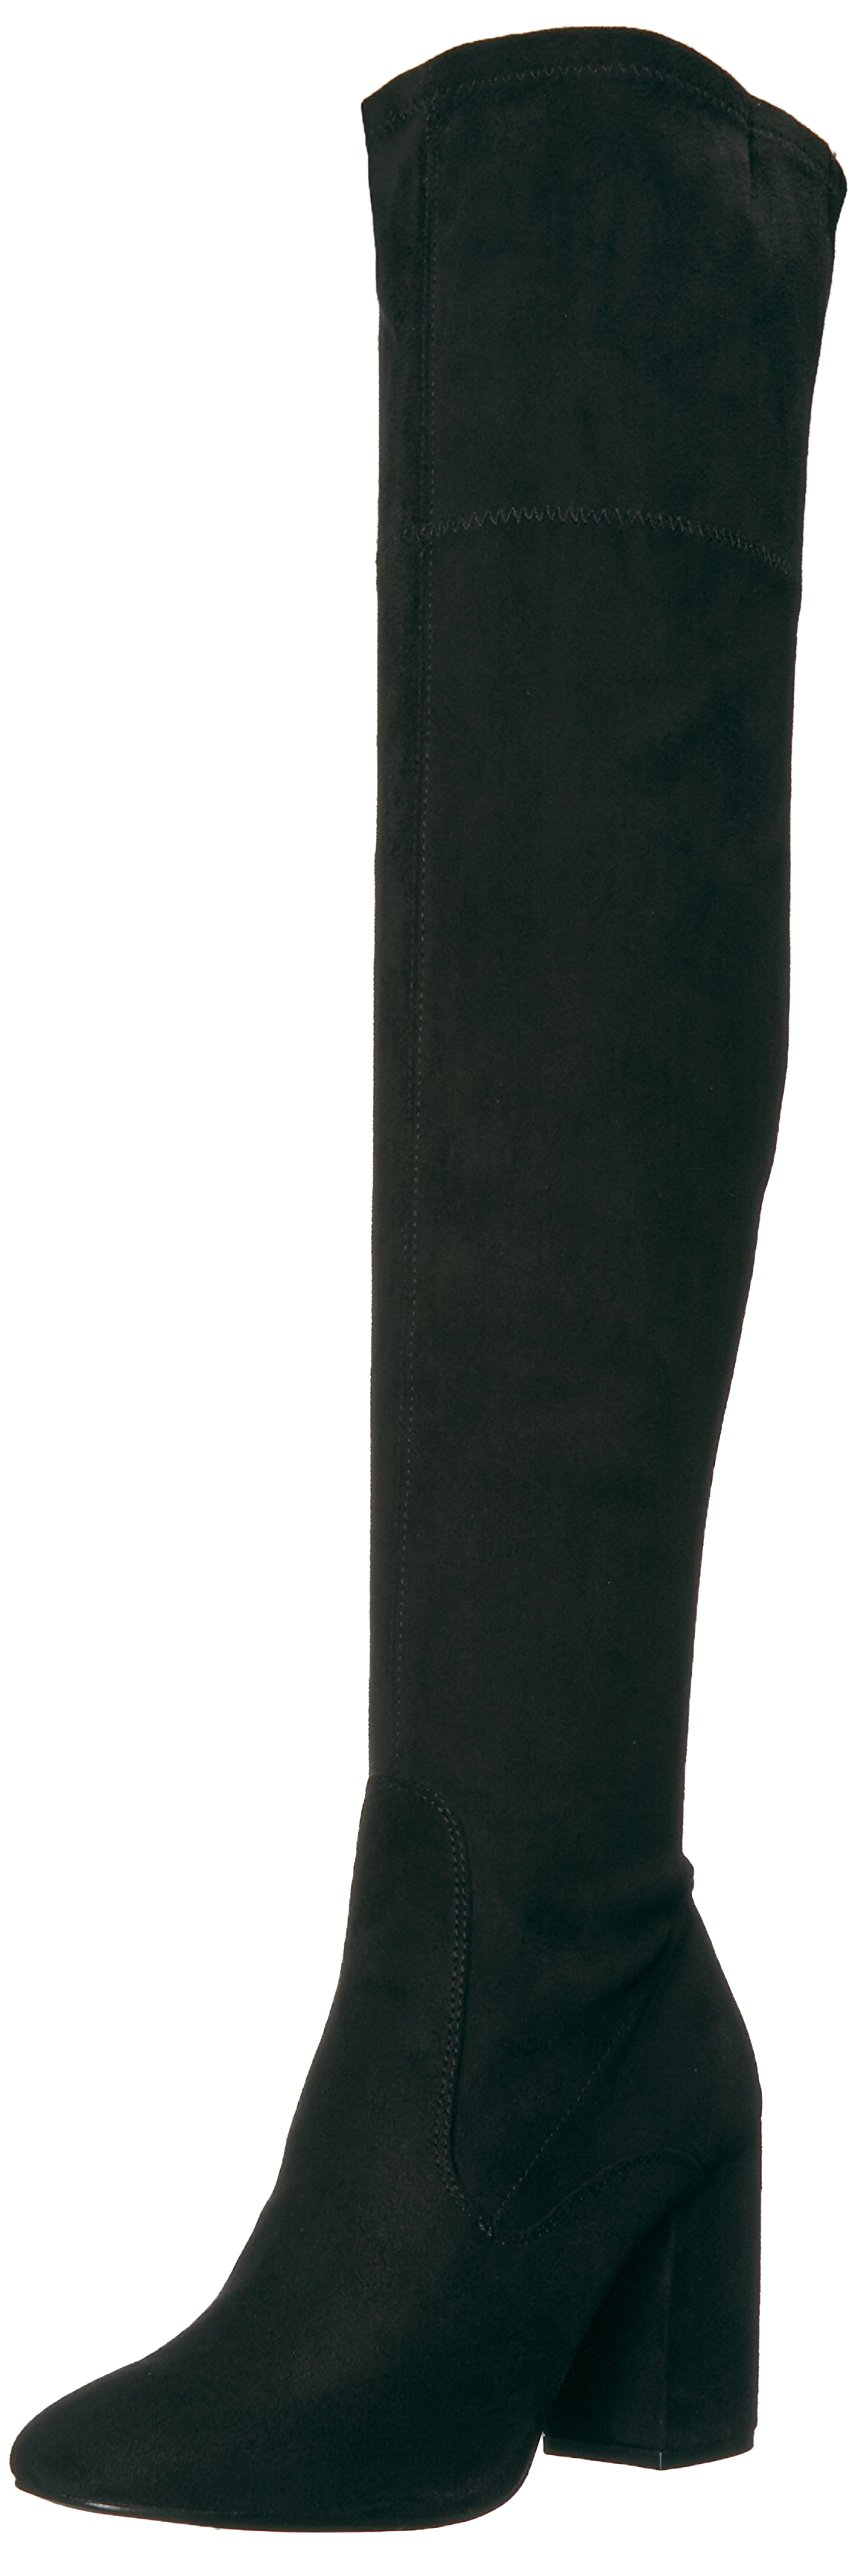 Kenneth Cole New York Women's Carah Knee High Tall Stretch Engineer Boot, Black, 7.5 M US